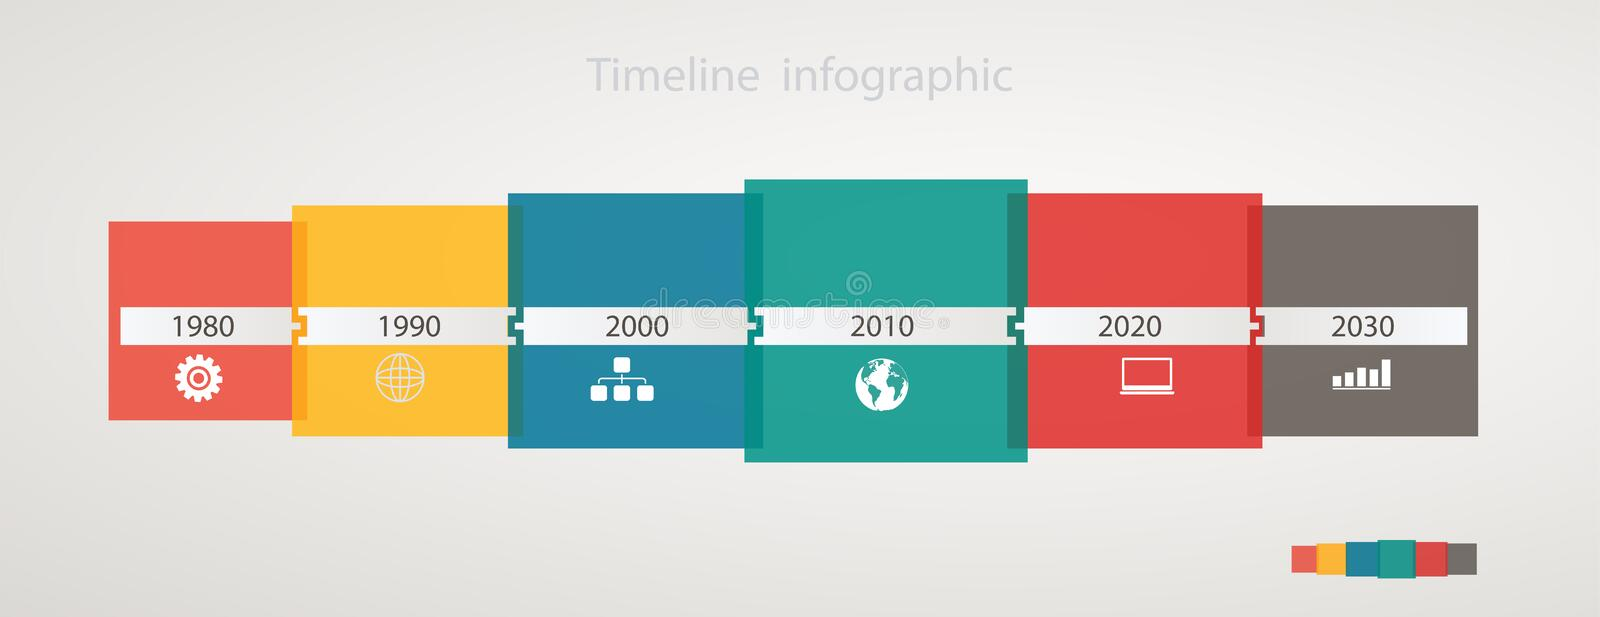 Infographic timeline with icons, step by step anual structure vector illustration